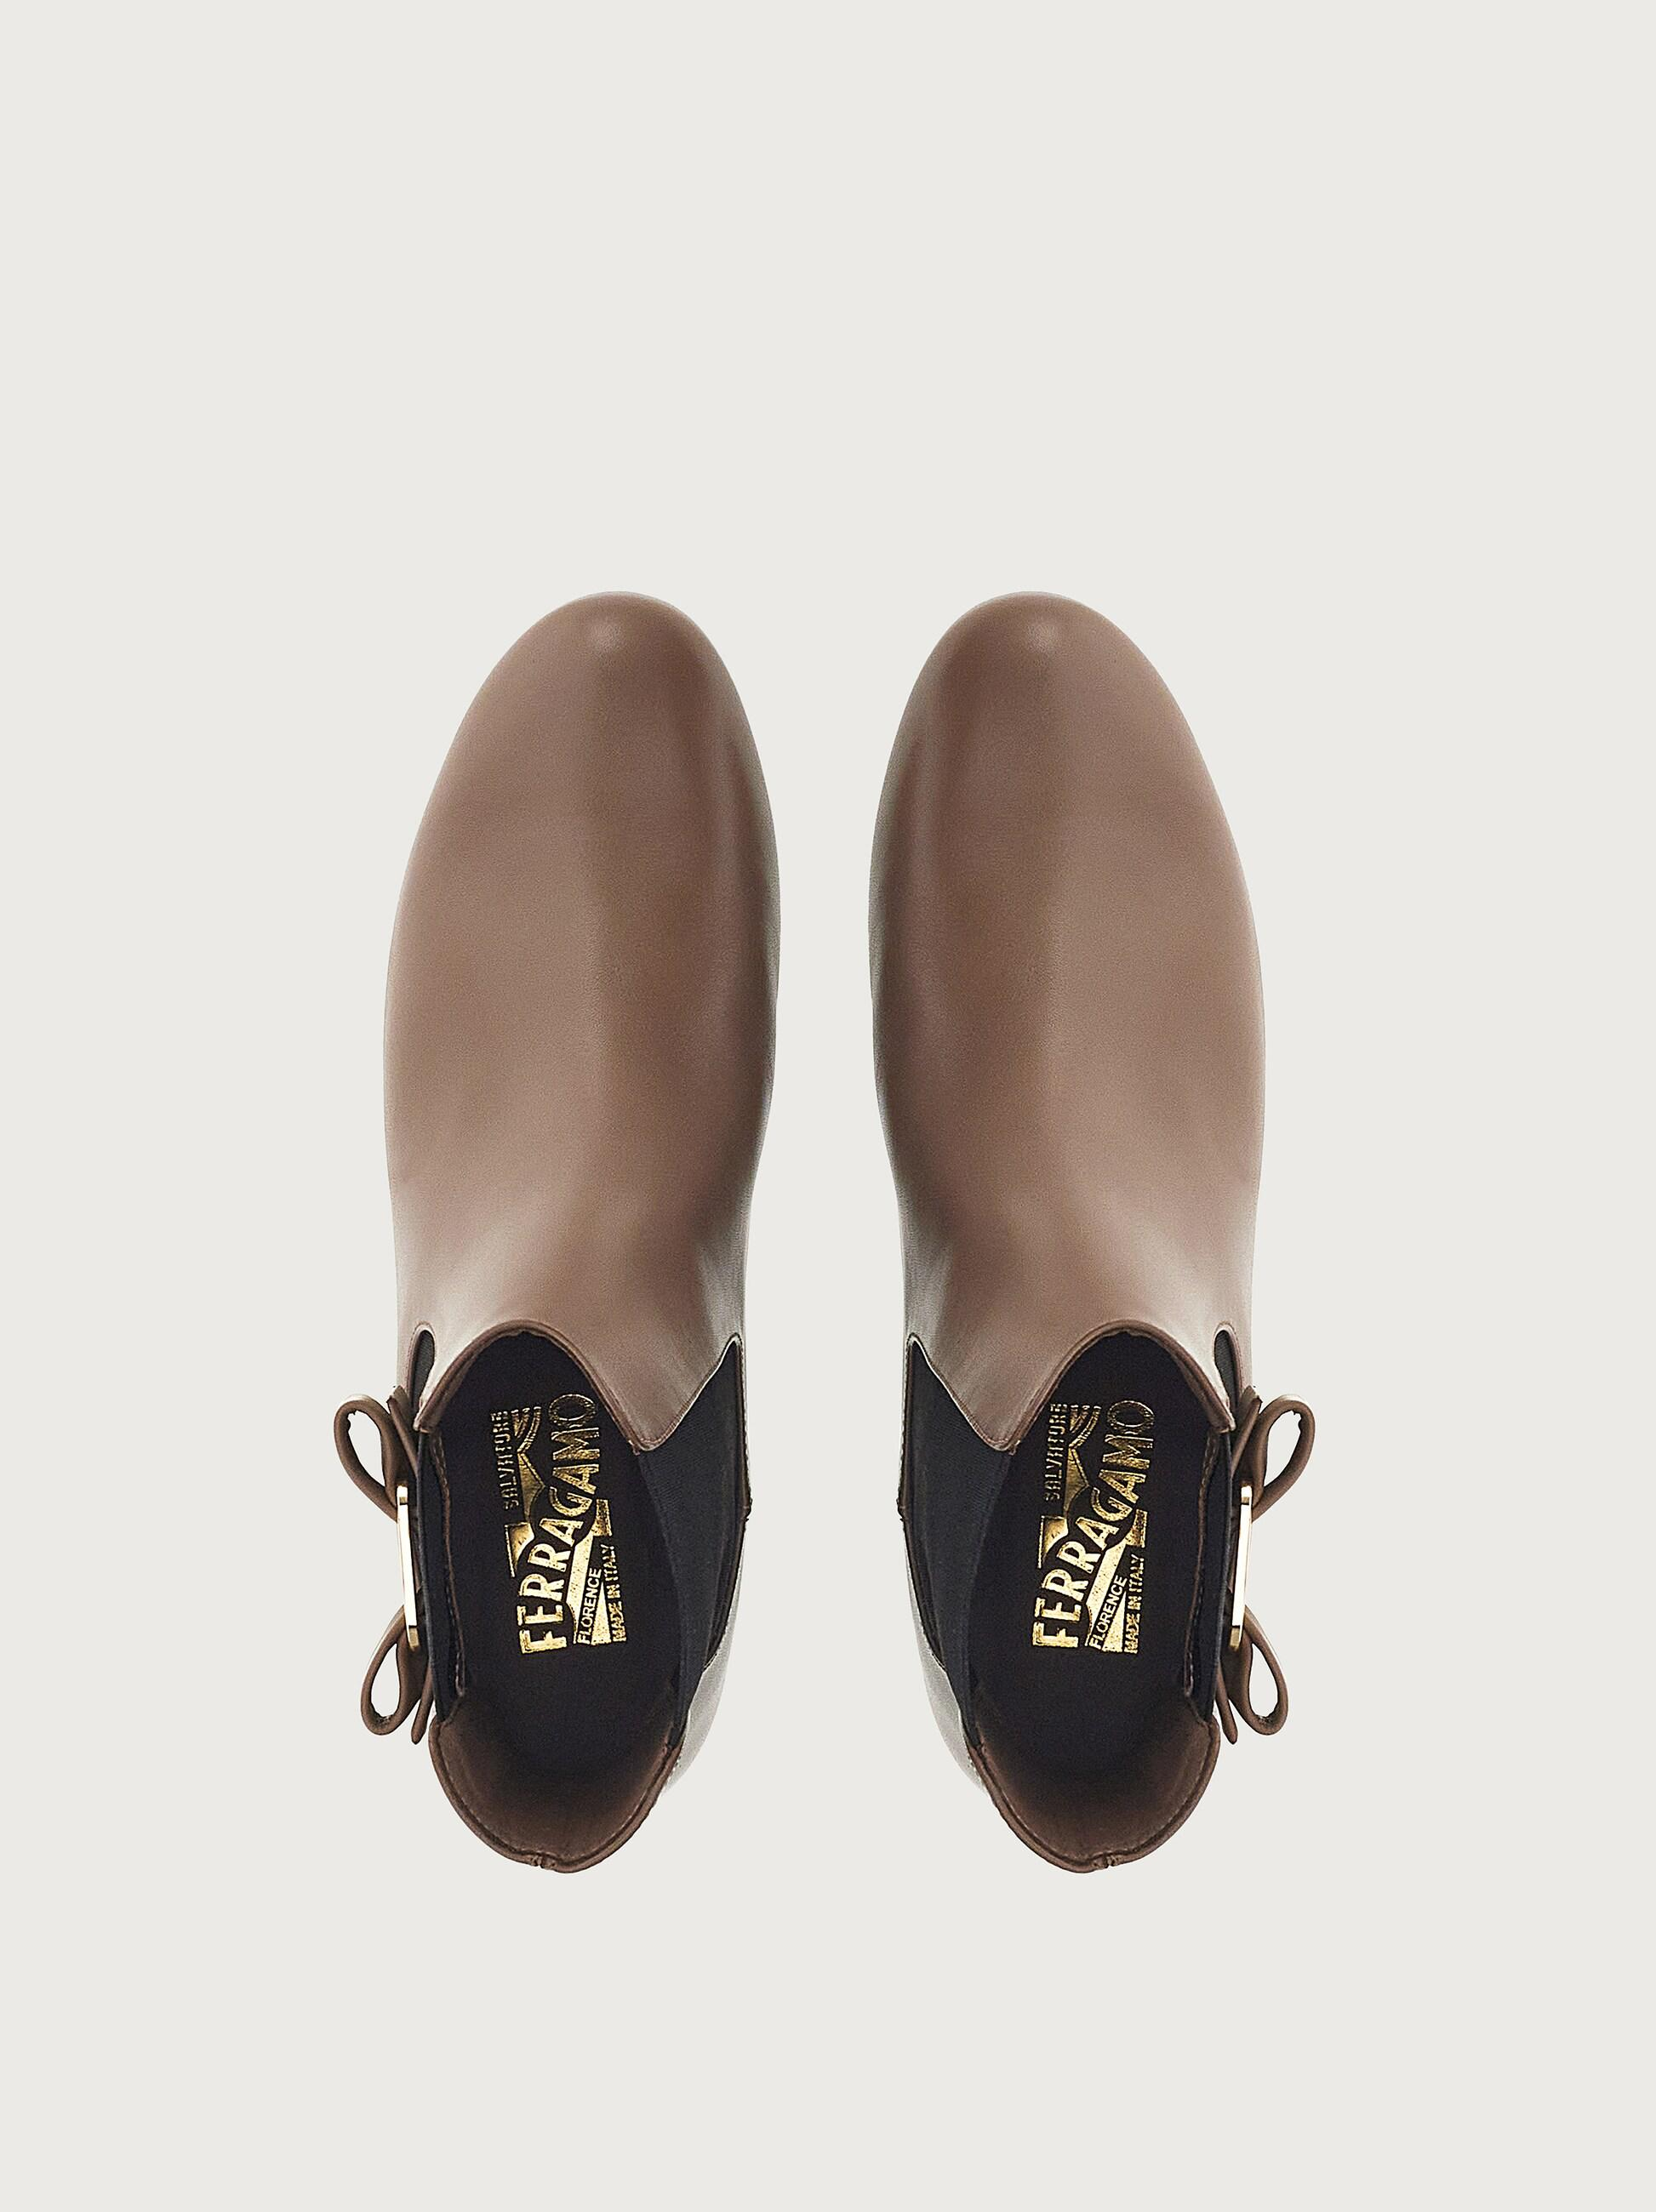 CHELSEA BOOT WITH VARA BOW 3